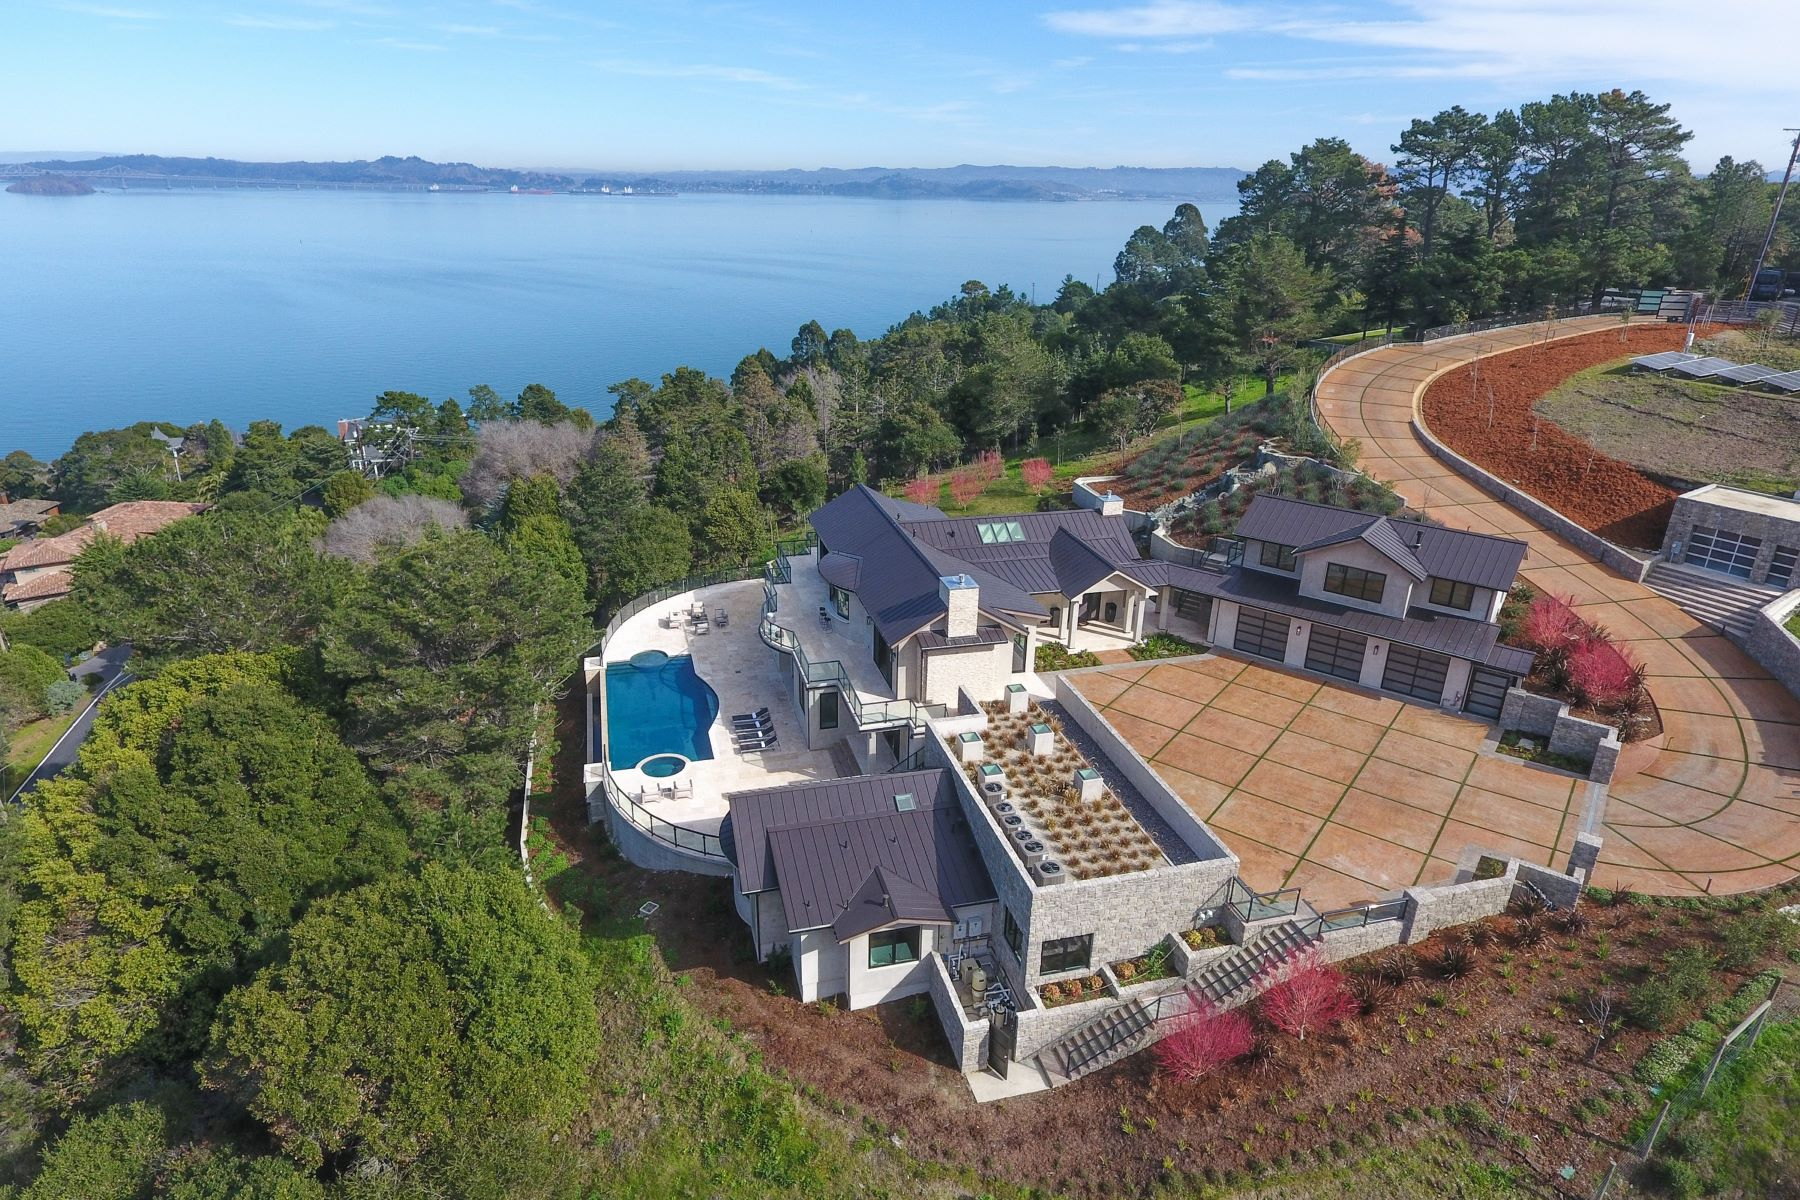 Single Family Home for Sale at Modern Hillside Estate 28 Teaberry Ln Tiburon, California 94920 United States